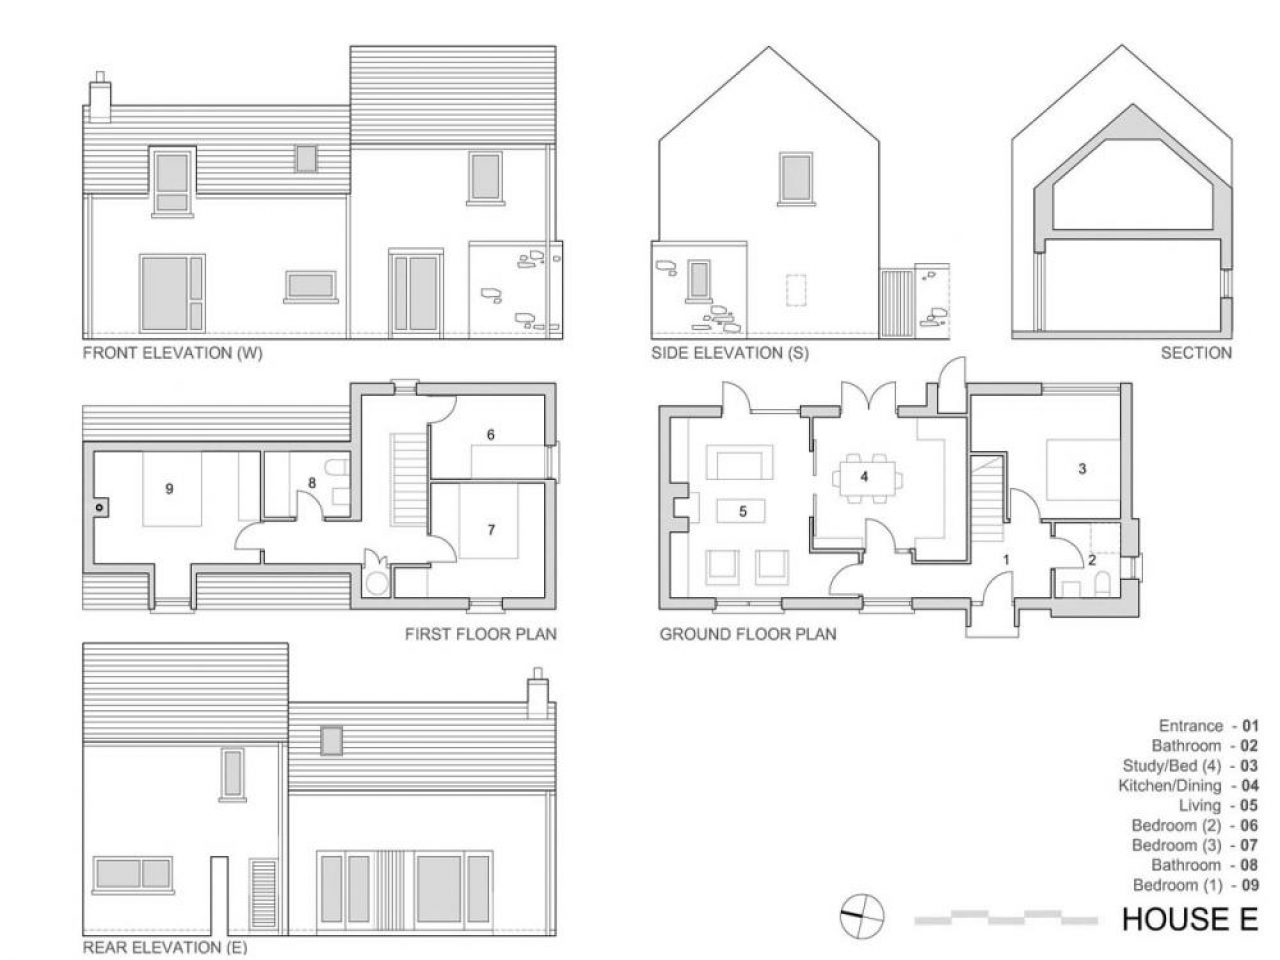 Elevation Plan Drawing : Elevation view drawing plan village house